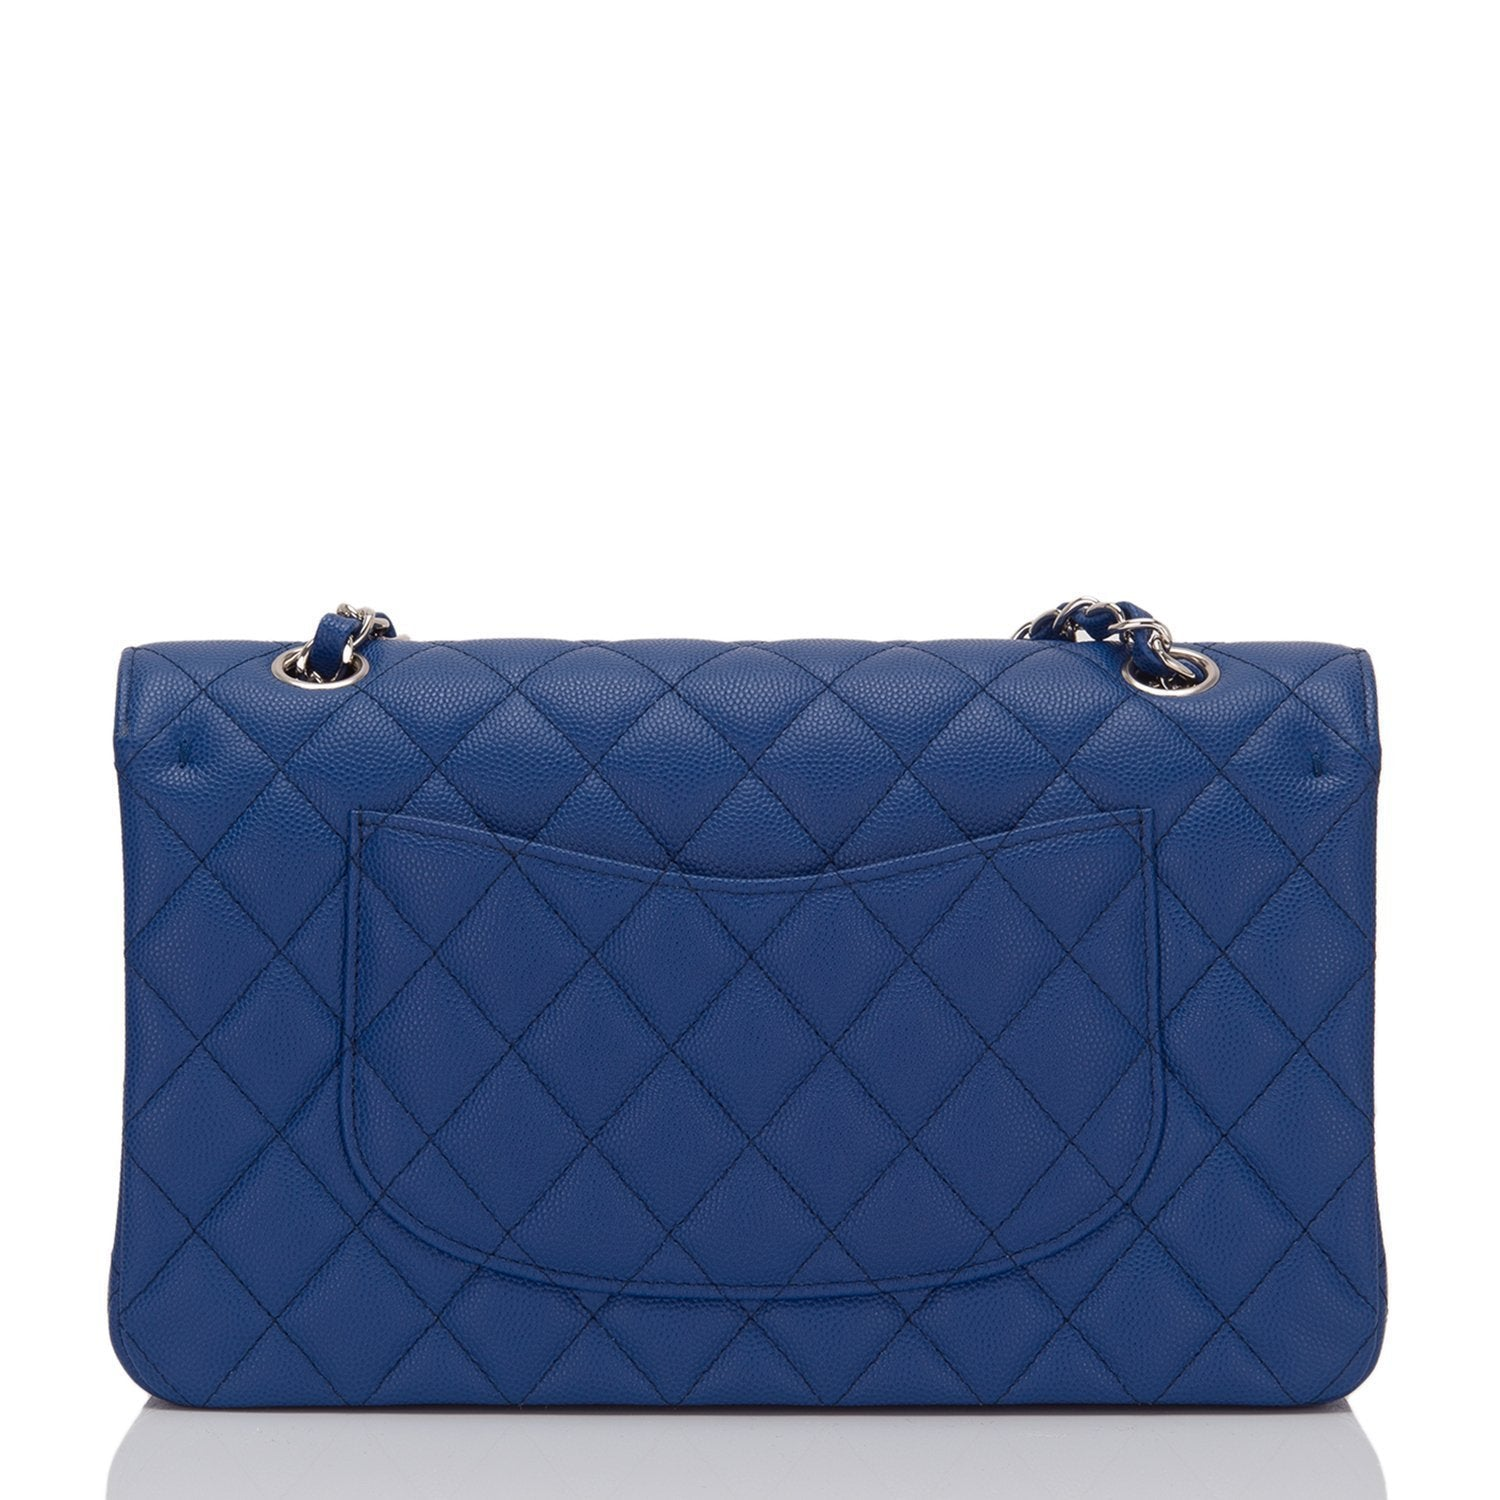 Chanel Blue Quilted Caviar Medium Classic Flap Bag – Madison Avenue ... f1aeb8a5f6e82